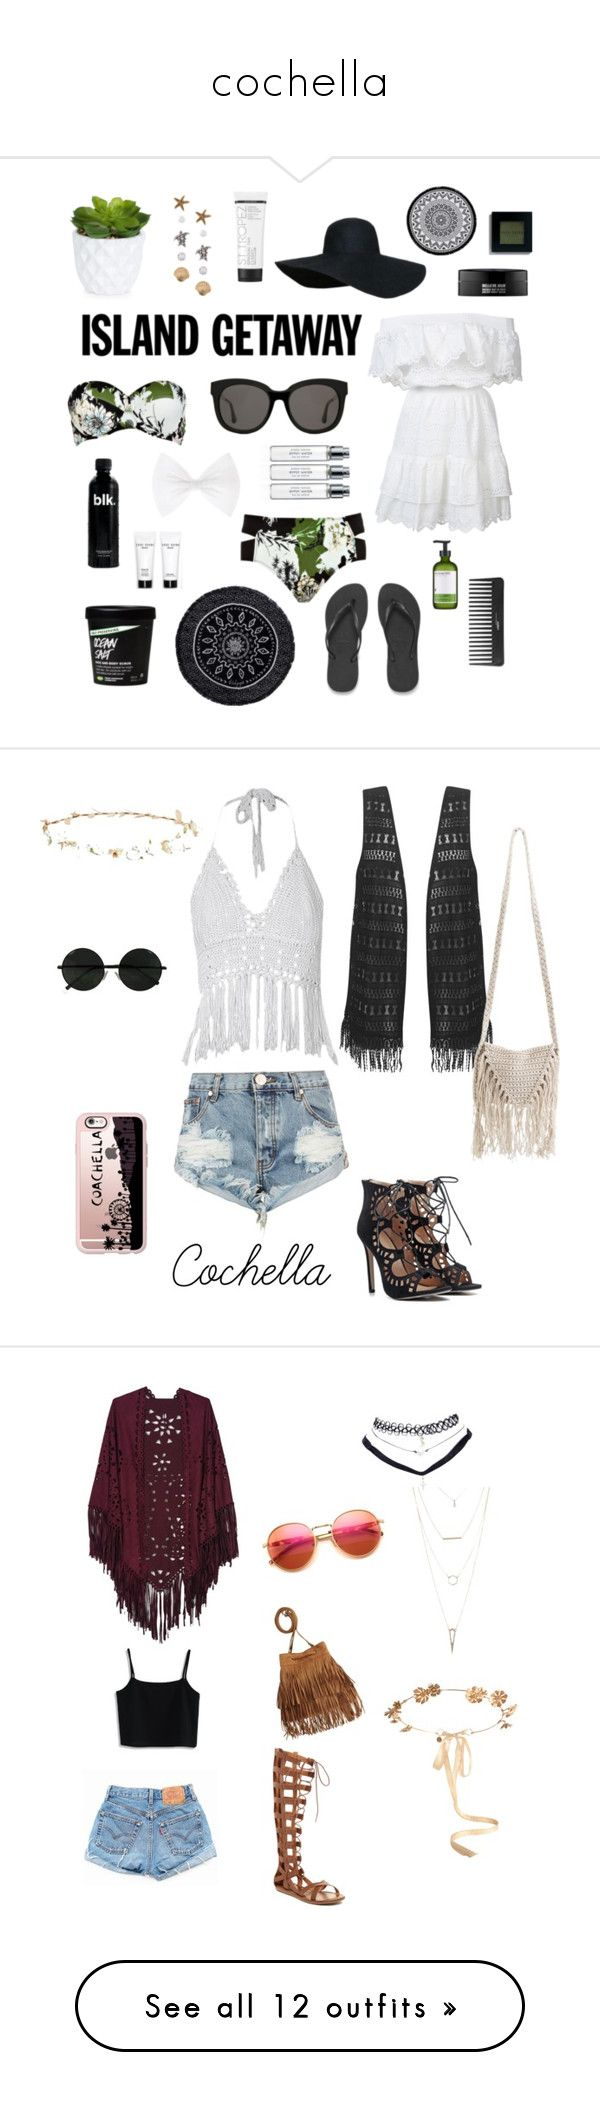 """""""cochella"""" by lenaskylerthompson-1 ❤ liked on Polyvore featuring River Island, LoveShackFancy, New Look, Havaianas, Perricone MD, Sephora Collection, The Beach People, Bobbi Brown Cosmetics, Gentle Monster and Linum Home Textiles"""